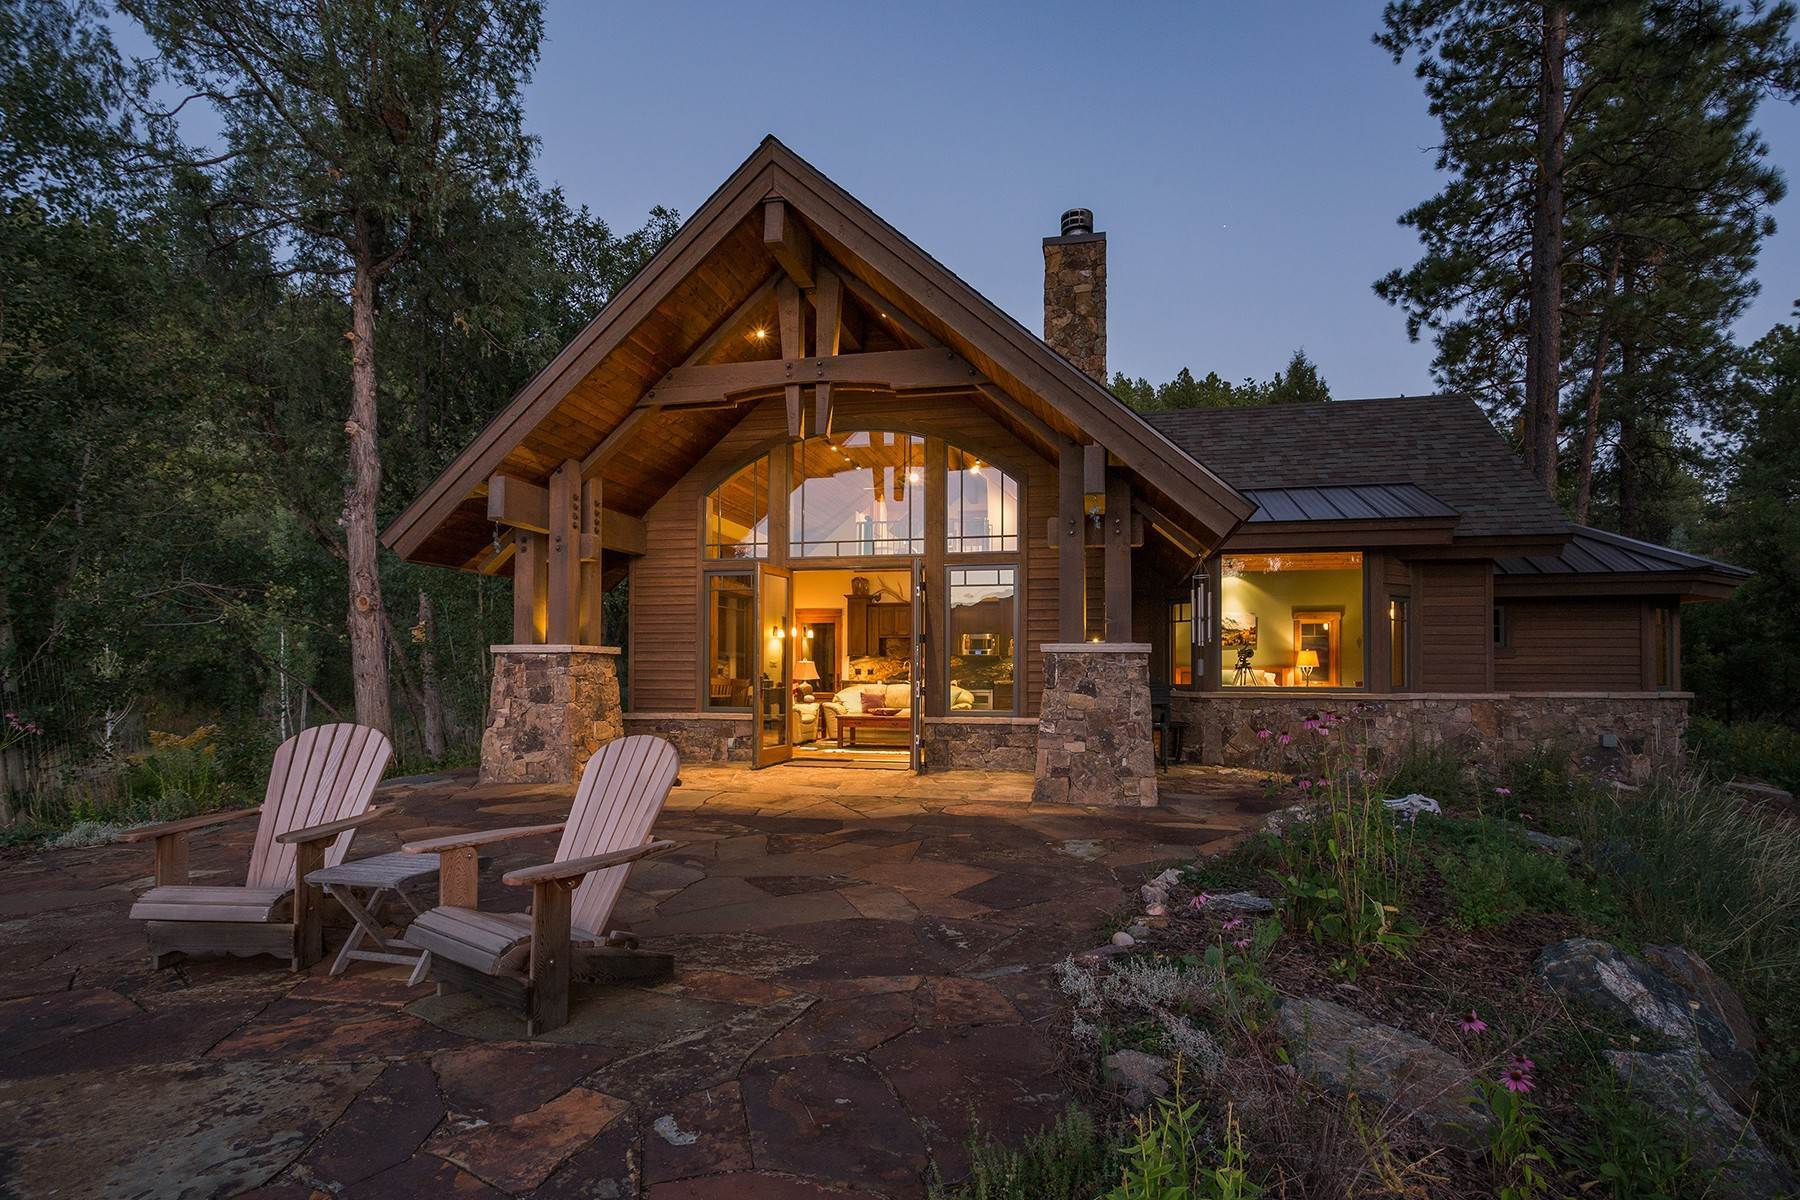 Single Family Homes for Sale at The Cottage at Becket Lake 400 Becket Lake Drive Durango, Colorado 81301 United States